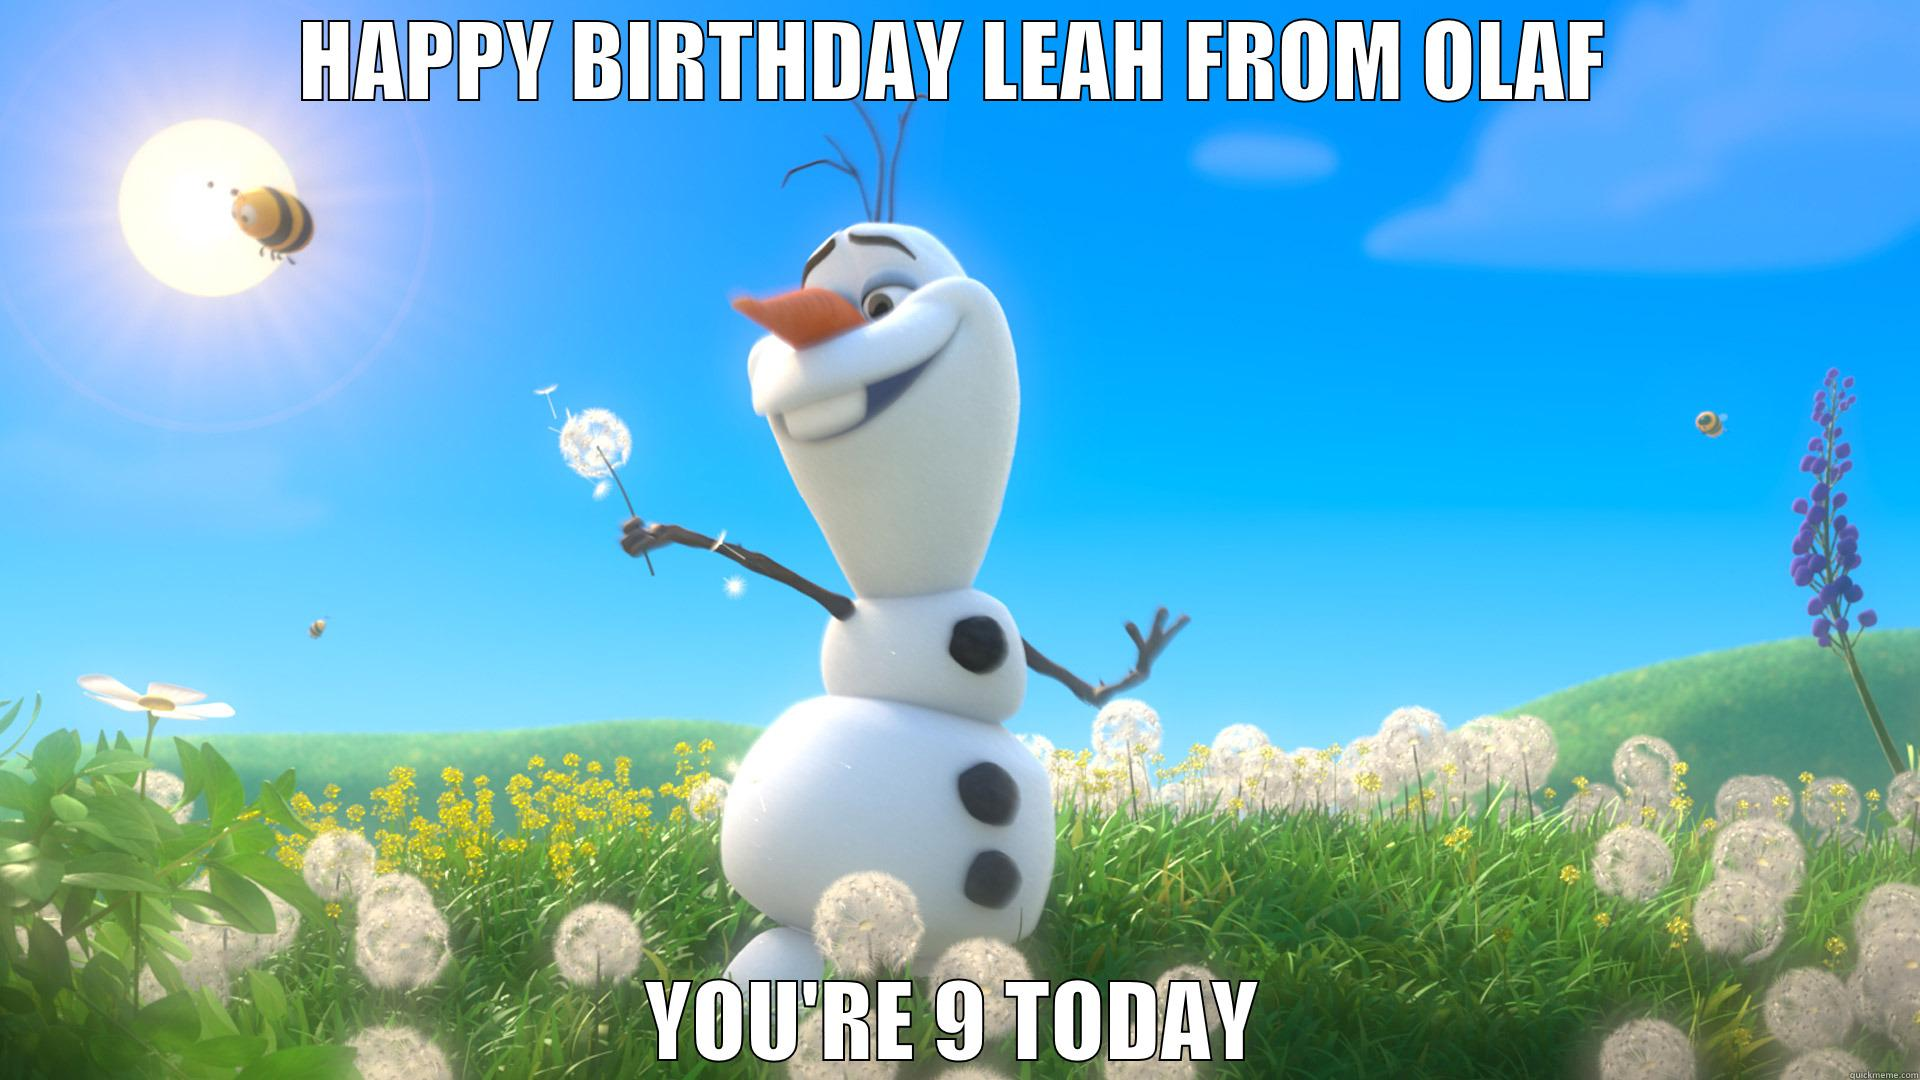 Leah's Birthday - HAPPY BIRTHDAY LEAH FROM OLAF YOU'RE 9 TODAY Misc